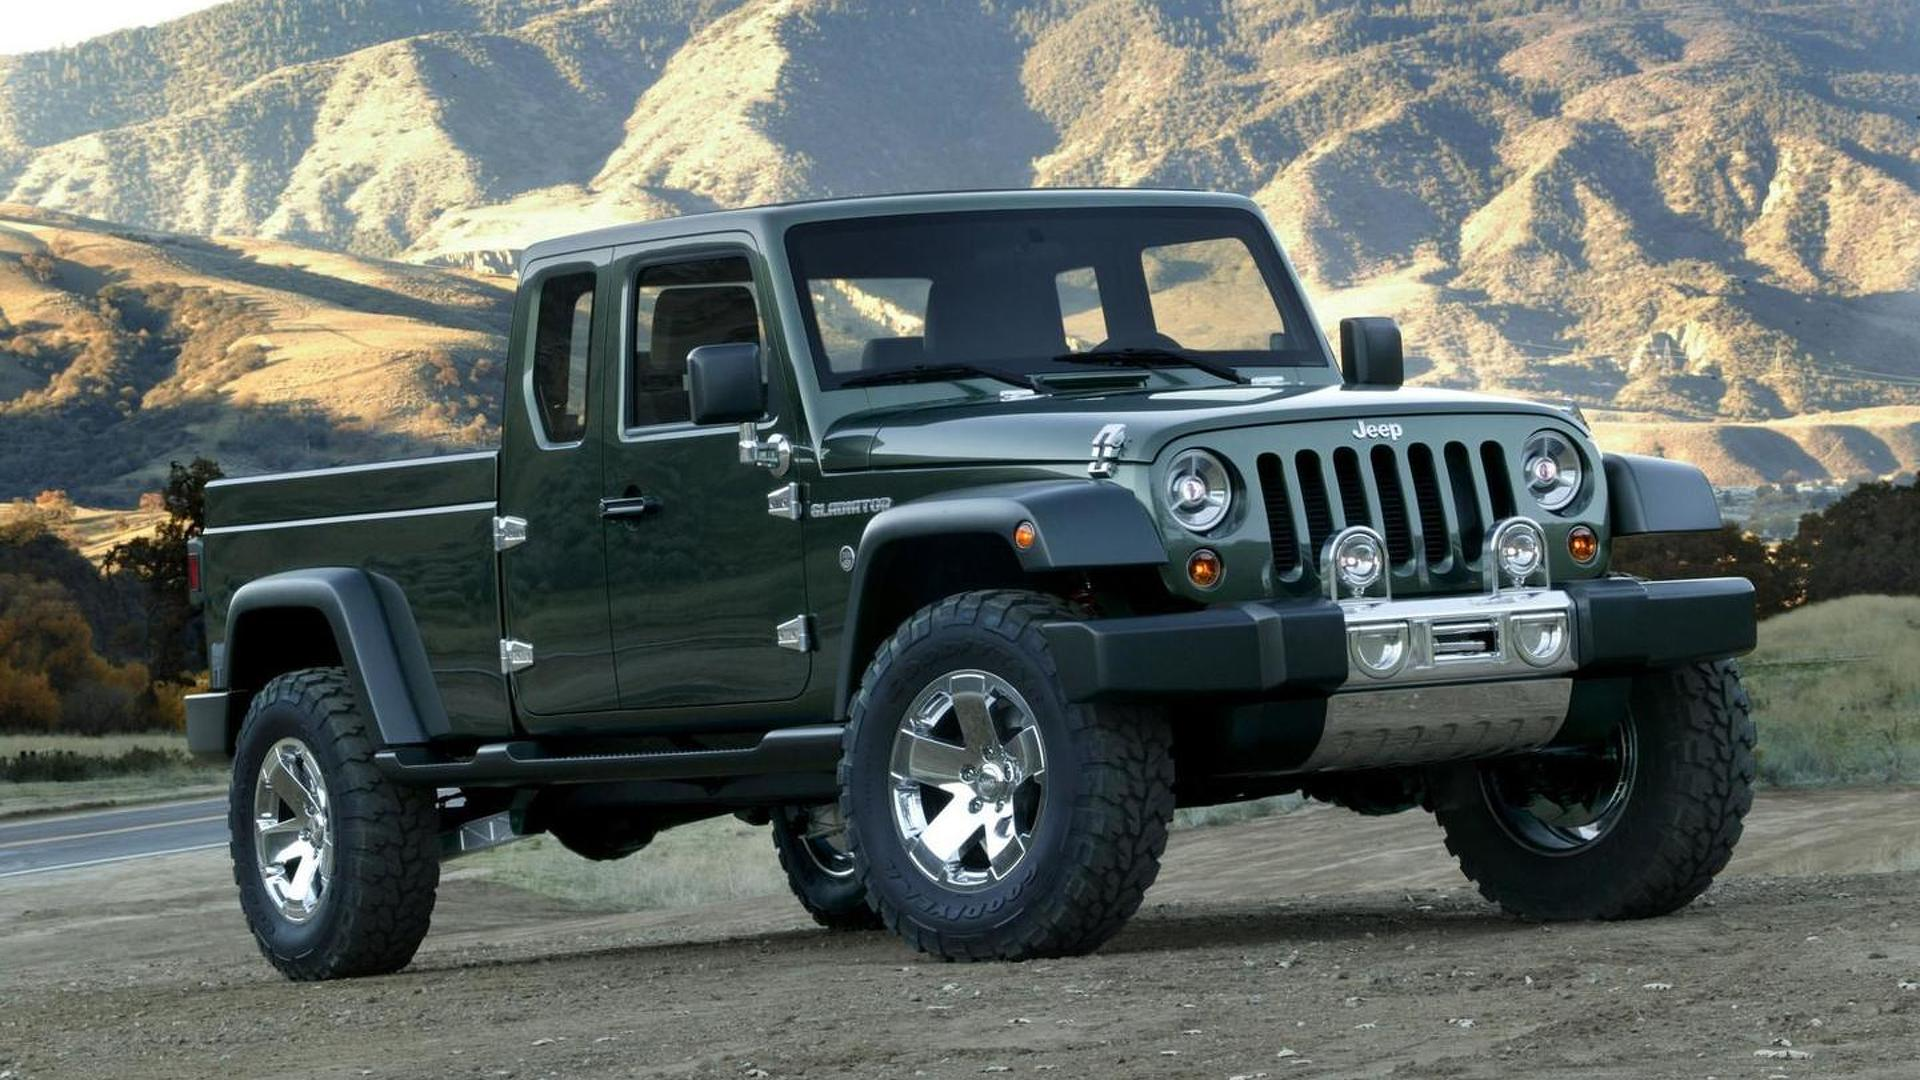 Jeep pickup decision coming soon - report